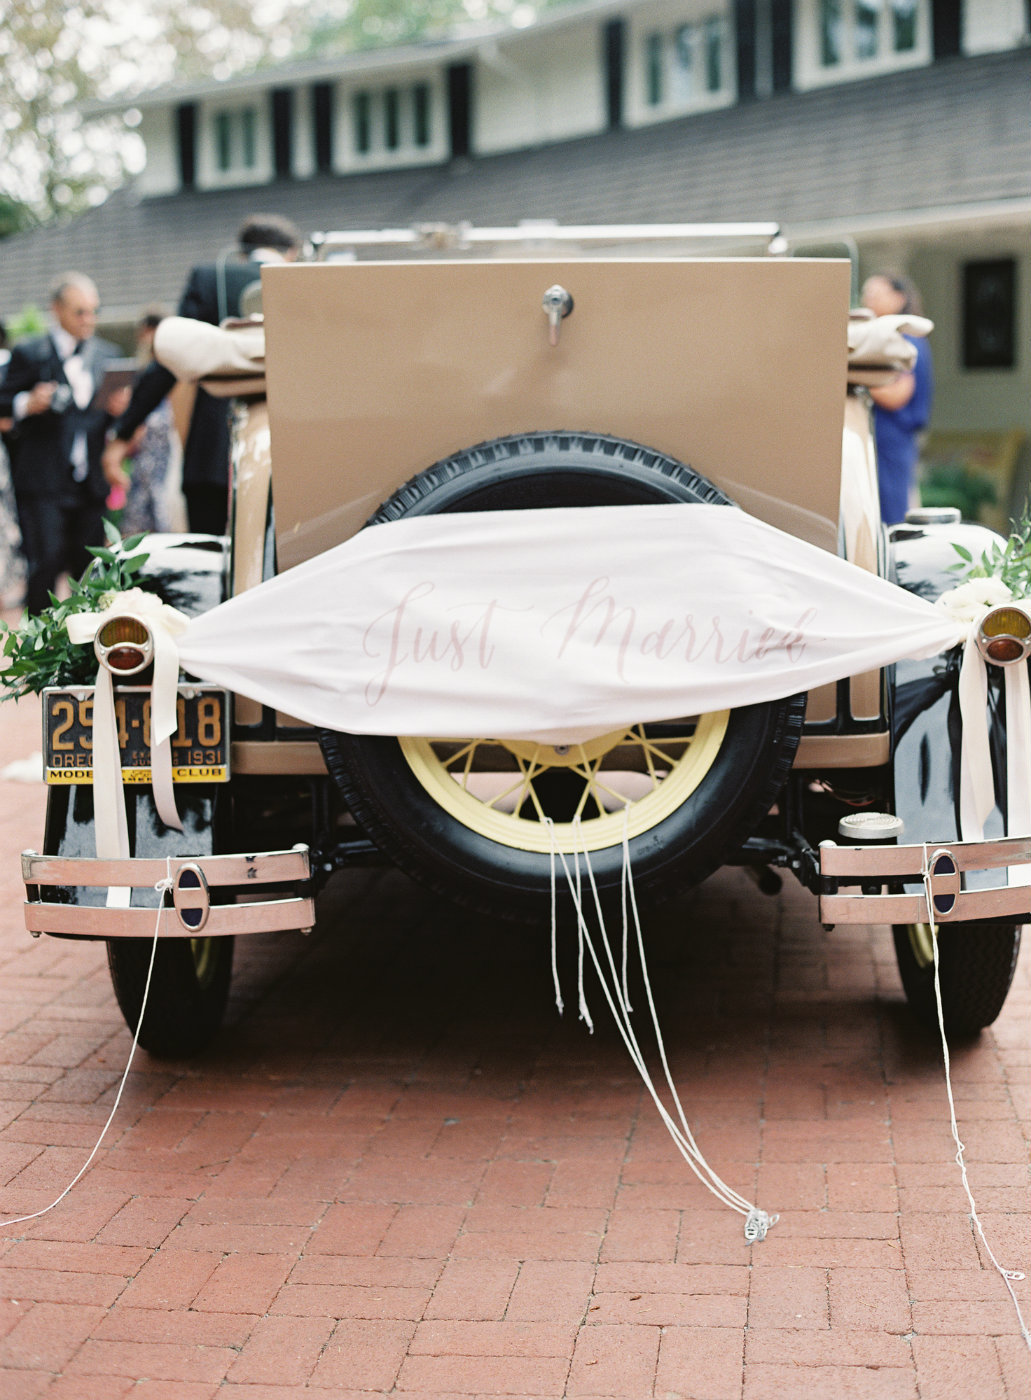 Vintage get away car at our summer tent wedding.